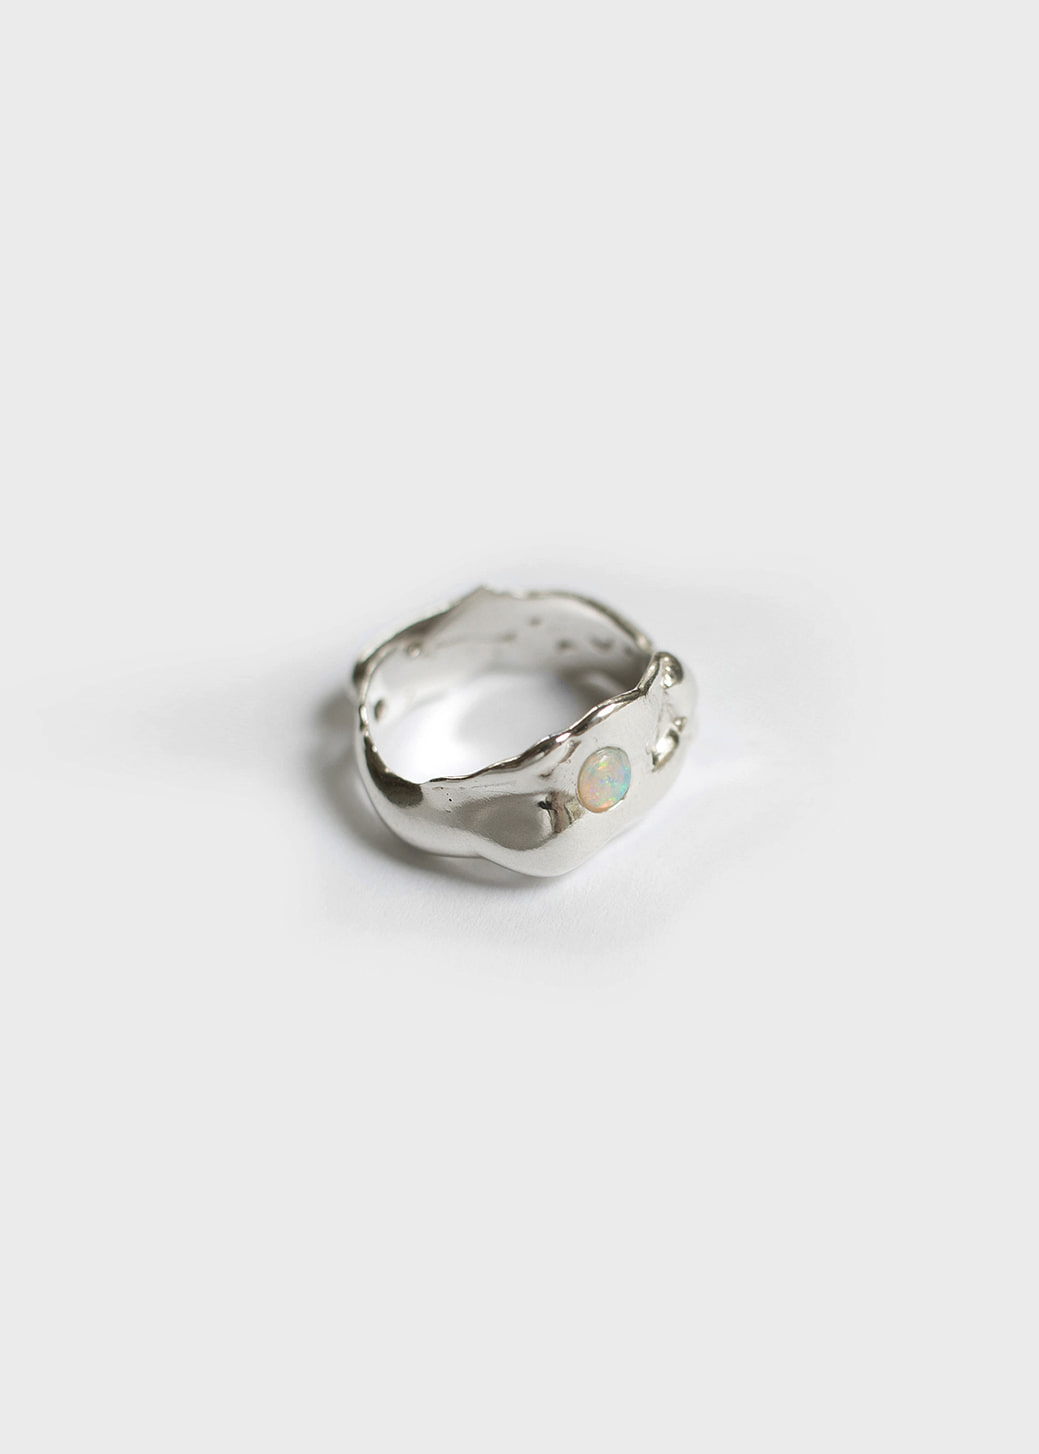 DEW DROP RING IN STERLING SILVER